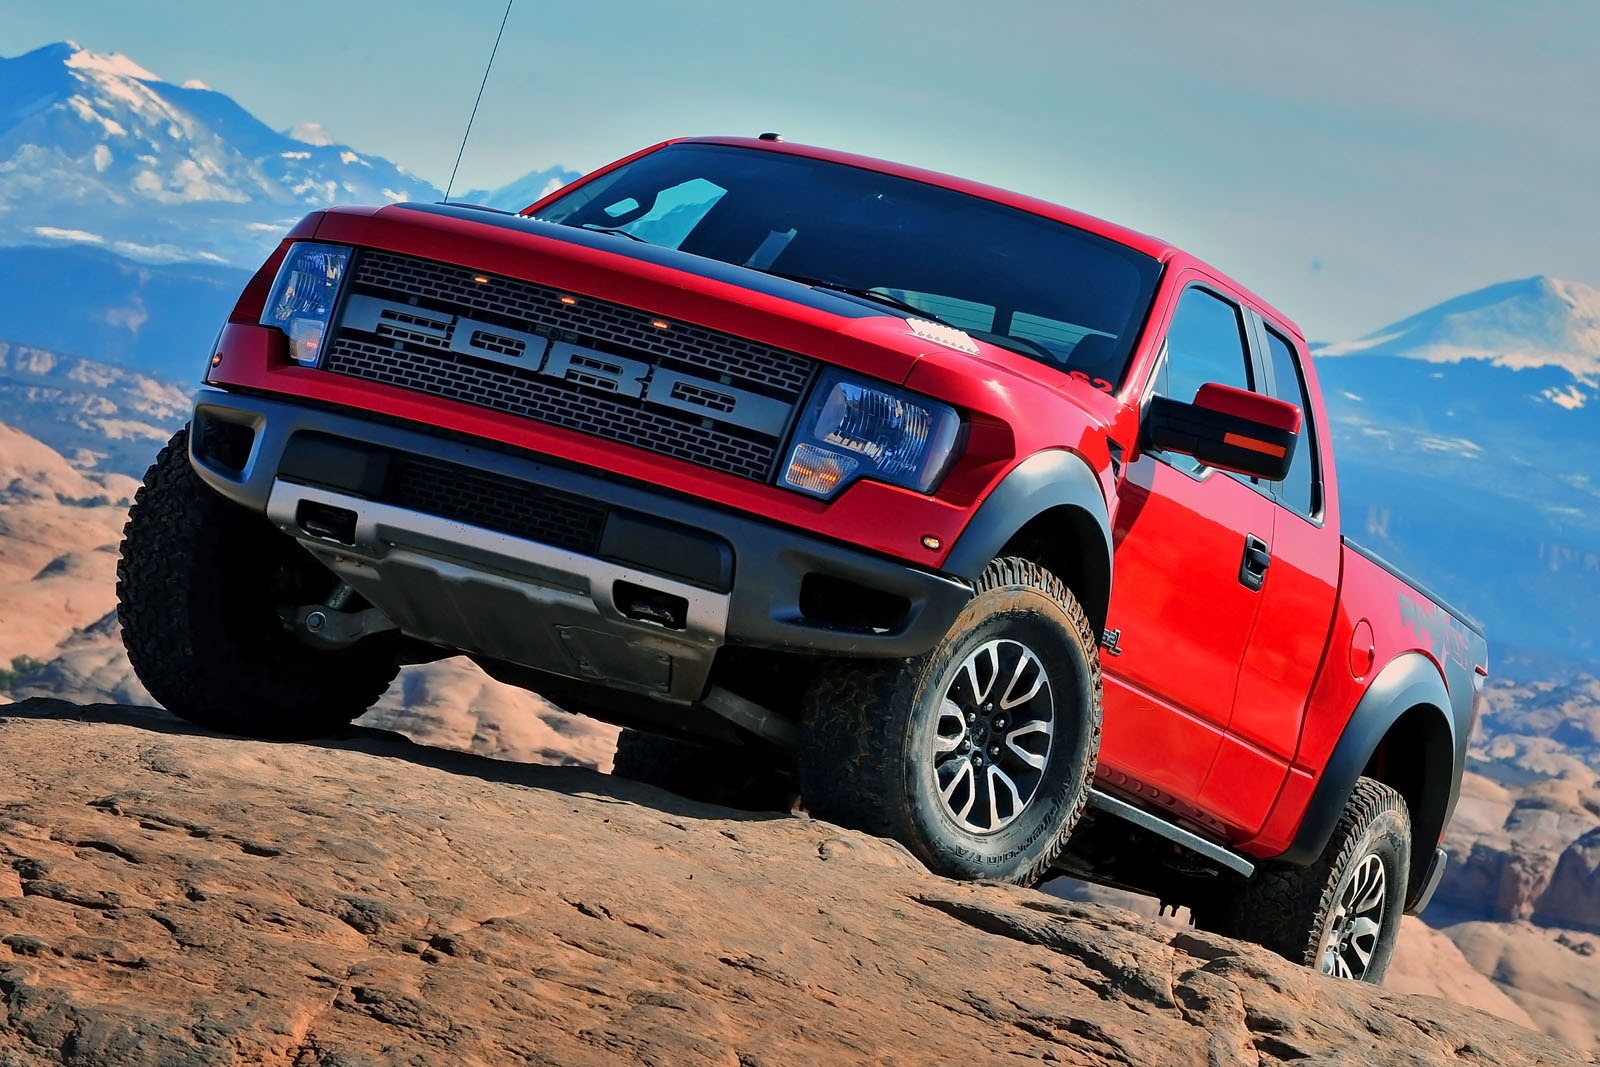 2012 Ford F-150 XL Regula exterior #5